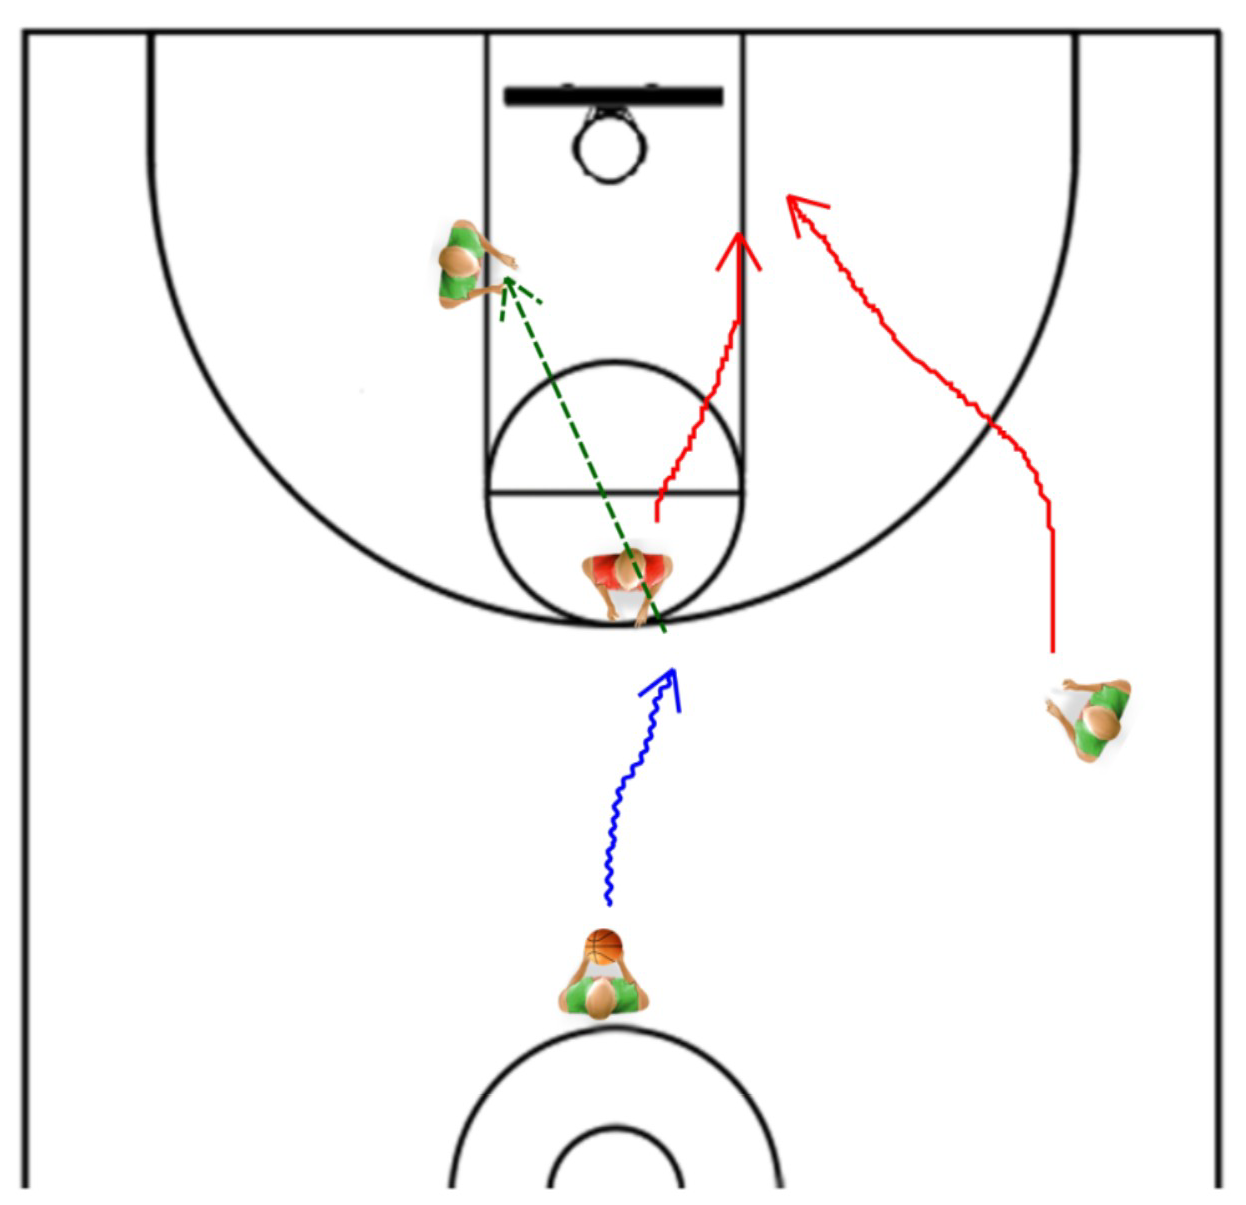 research on dribbling and passing Passing is the quickest and most effective way to get the ball from player to player  and move it  dribble, move your dribbling hand to the top quarter of the ball.